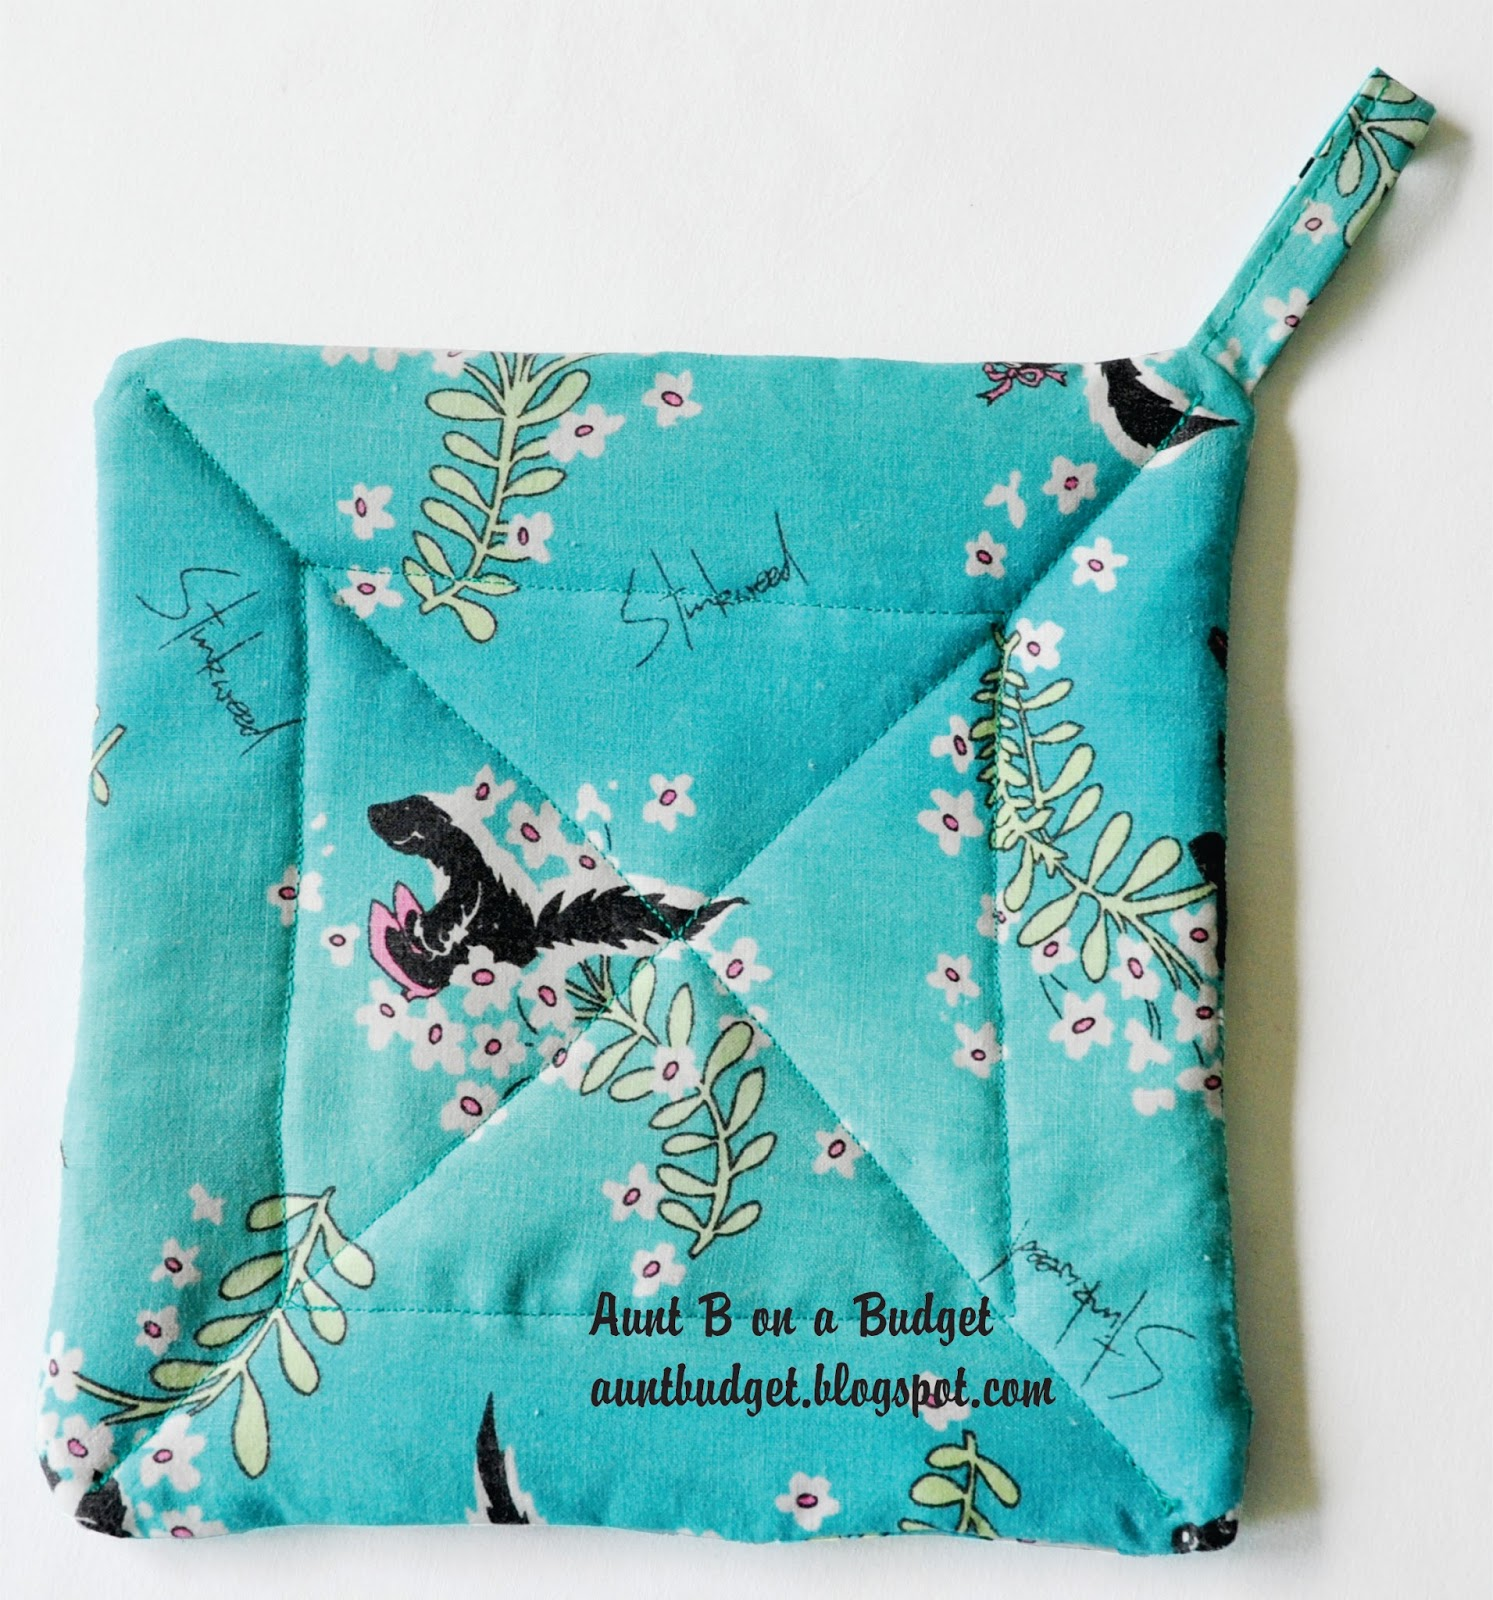 Homemade Pot Holders: Aunt B On A Budget: Re-Vision: Making Or Re-Covering